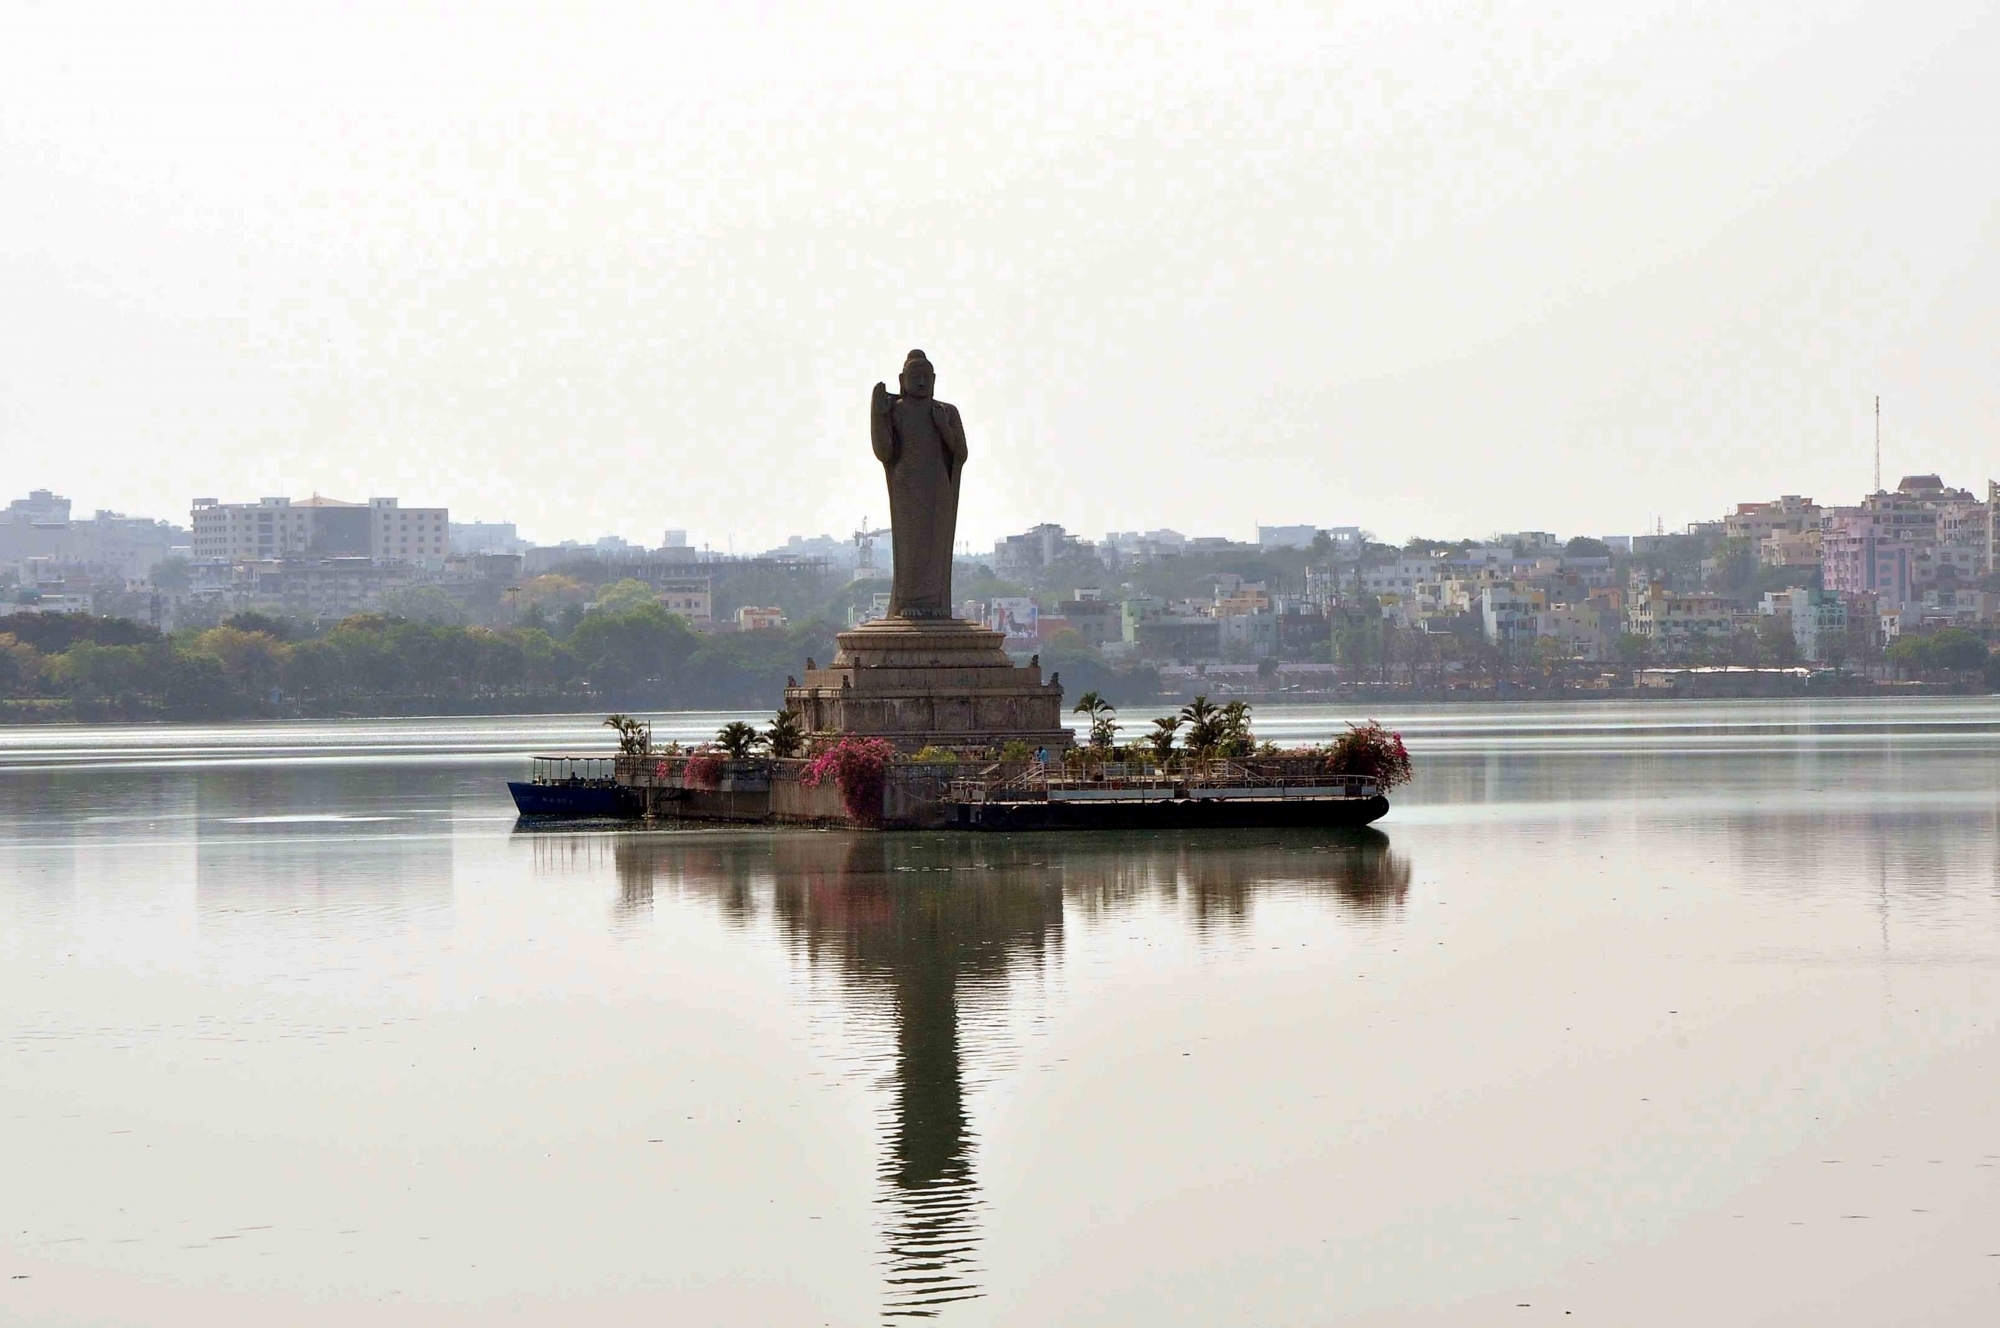 No increase in Hussain Sagar pollution this year, says TSPCB